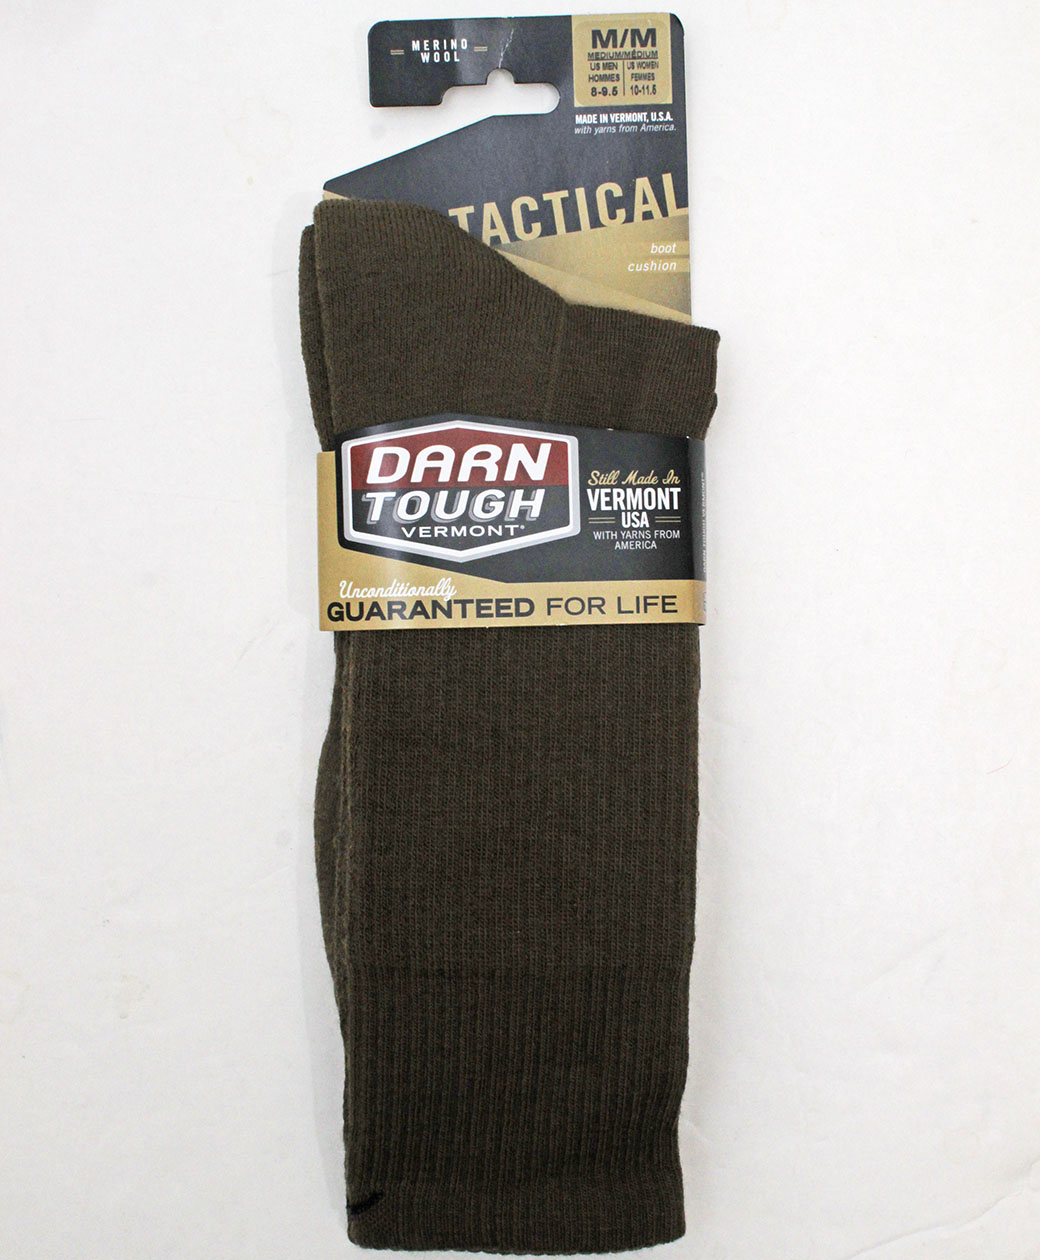 DARN TOUGH VERMONT Tactical Boot Cushion(COYOTE BROWN)